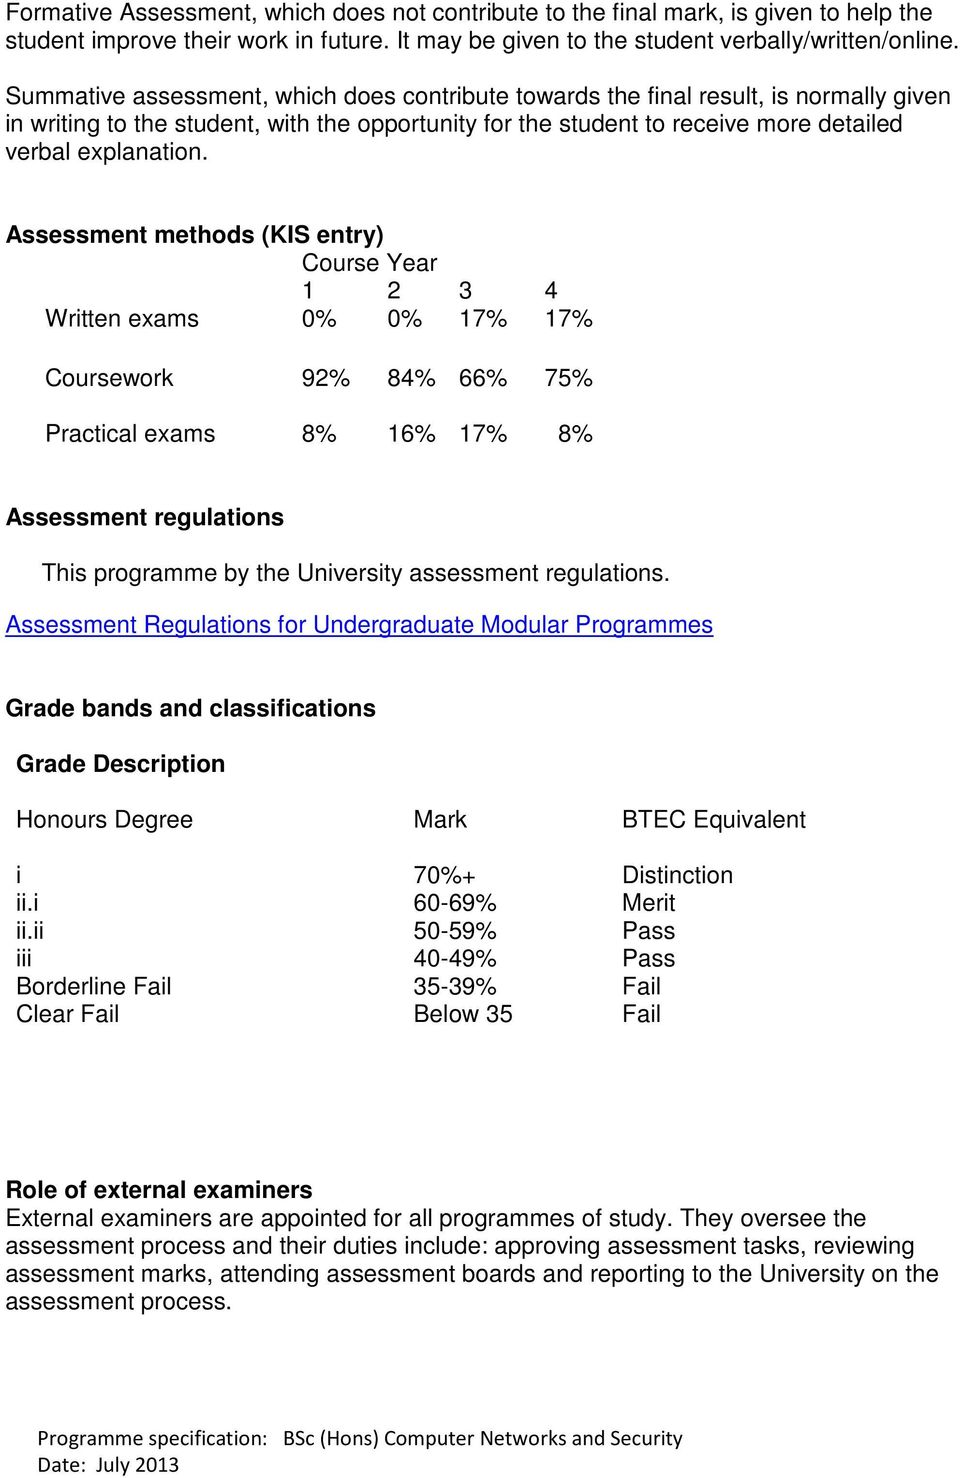 Assessment methods (KIS entry) Course Year 1 2 3 4 Written exams 0% 0% 17% 17% Coursework 92% 84% 66% 75% Practical exams 8% 16% 17% 8% Assessment regulations This programme by the University